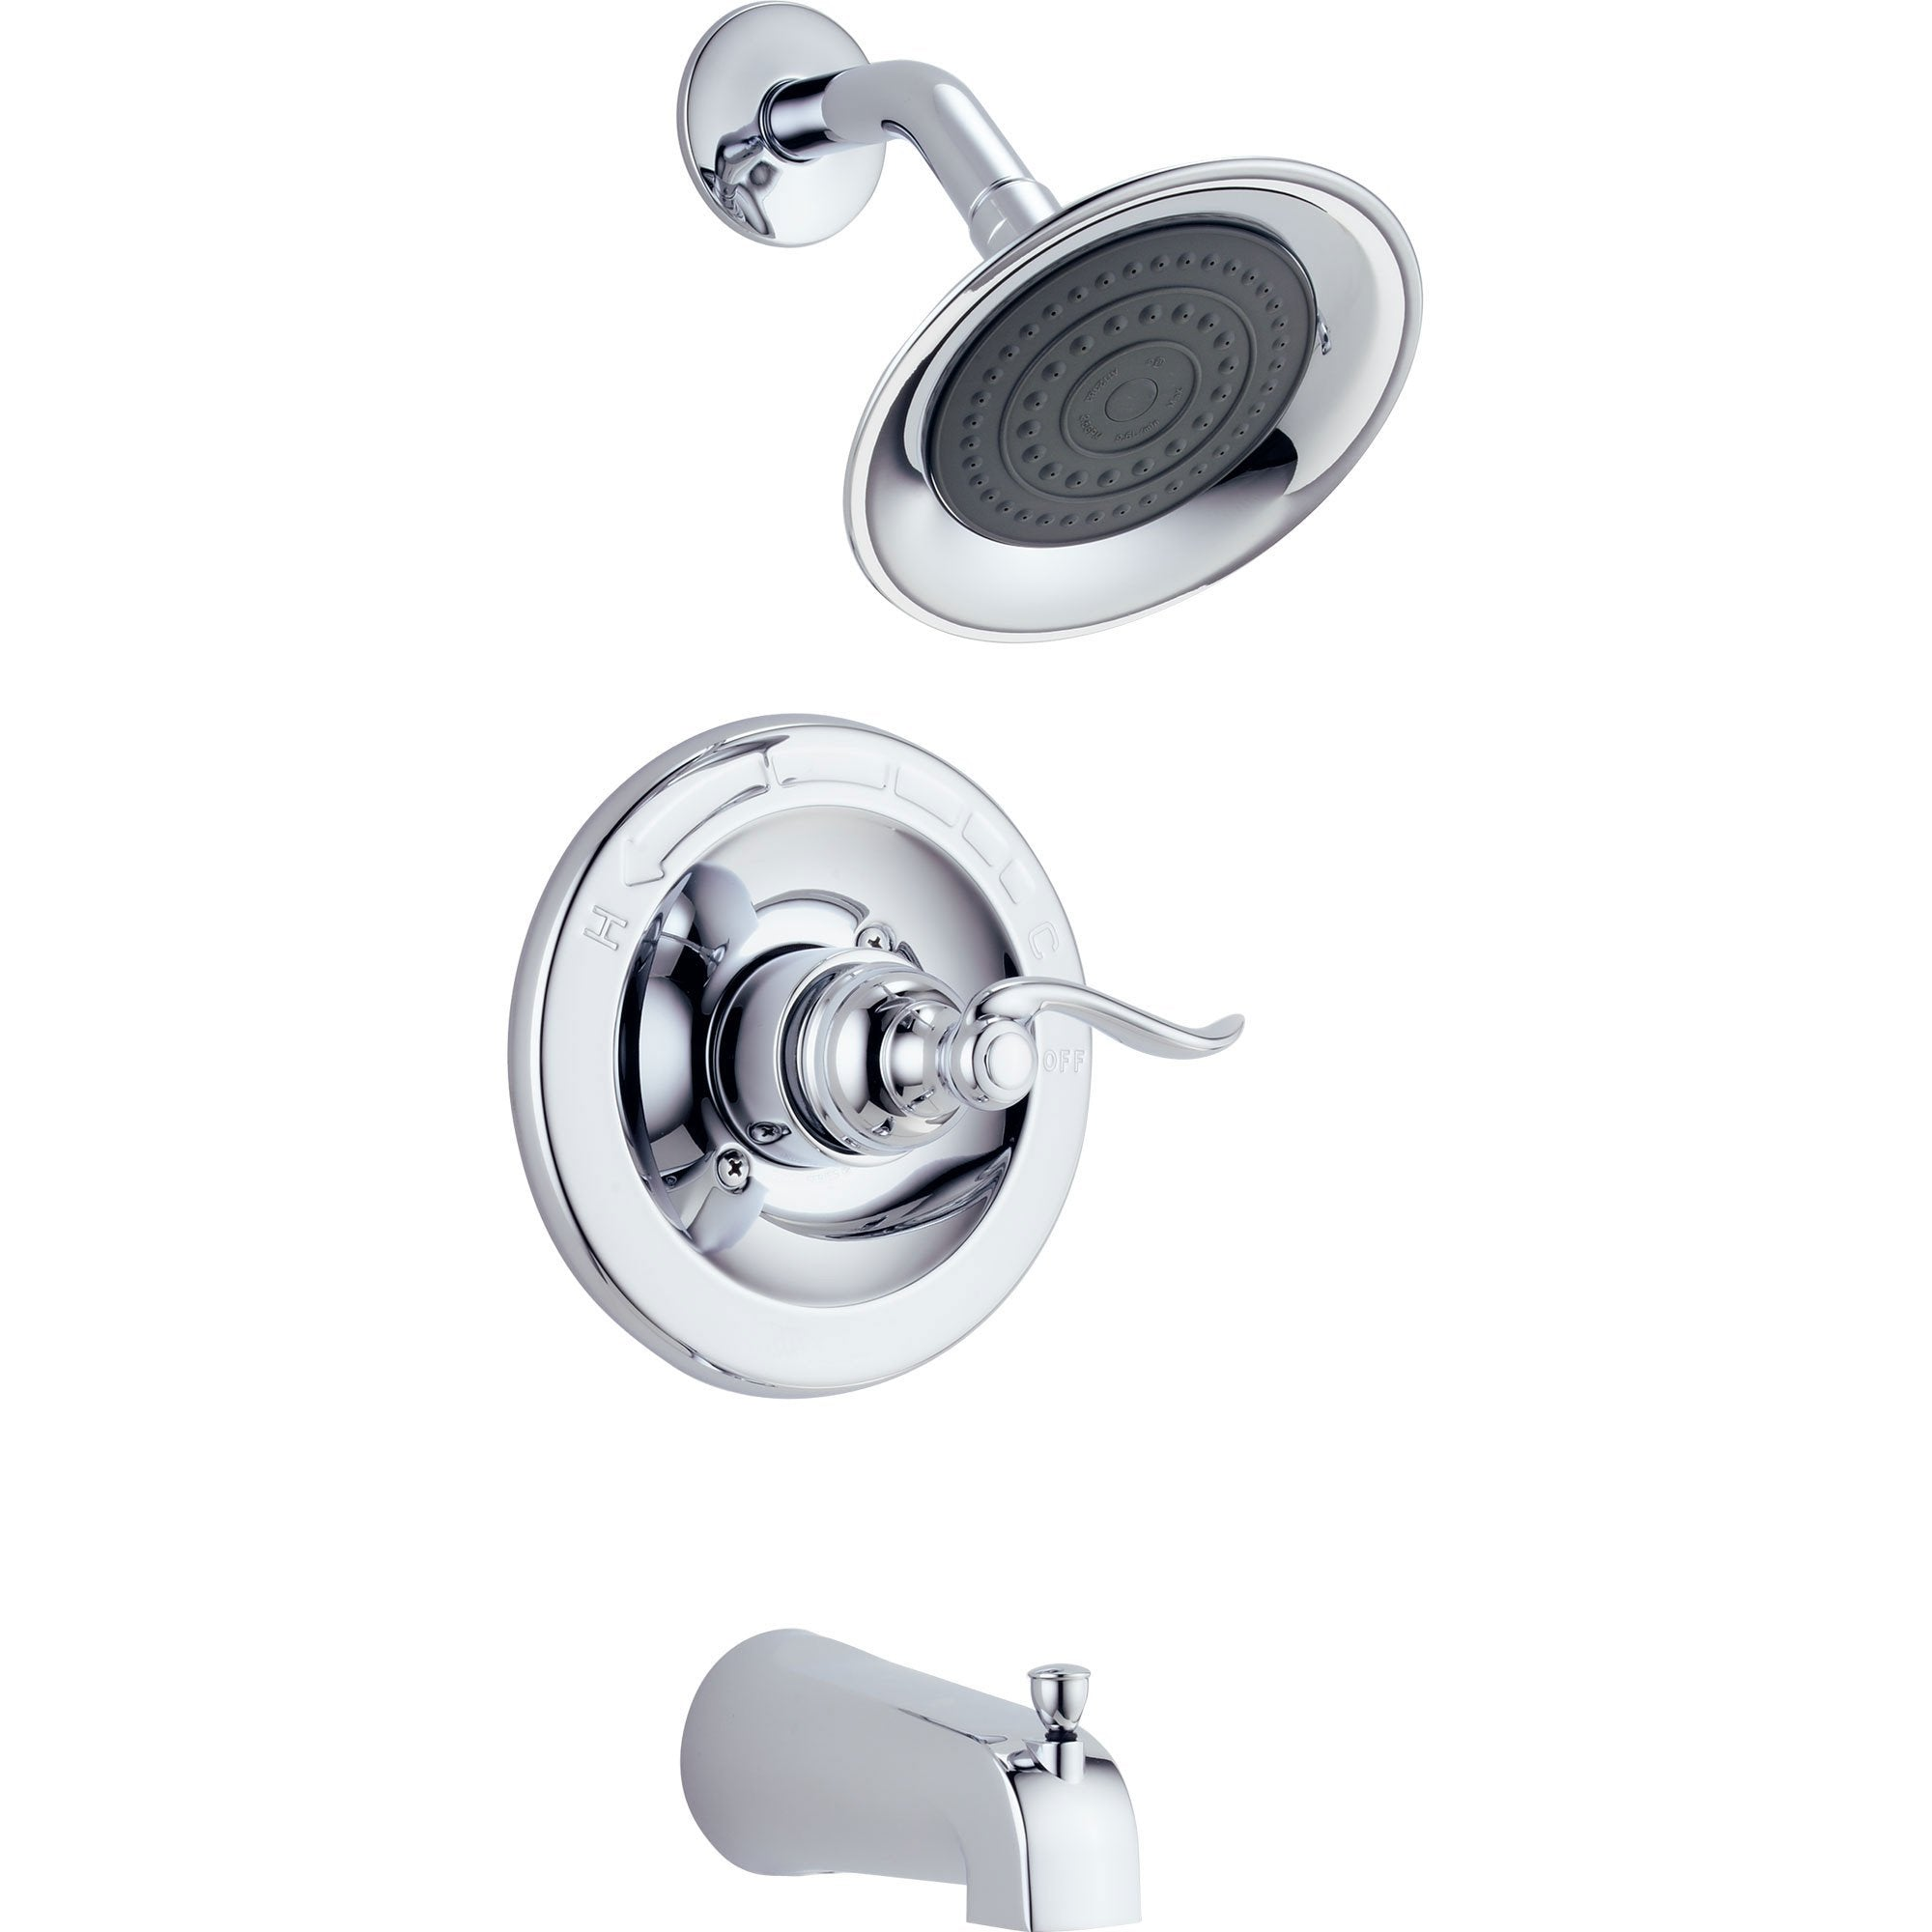 Delta Windemere Chrome Tub and Shower Combination Faucet Trim Kit 517758